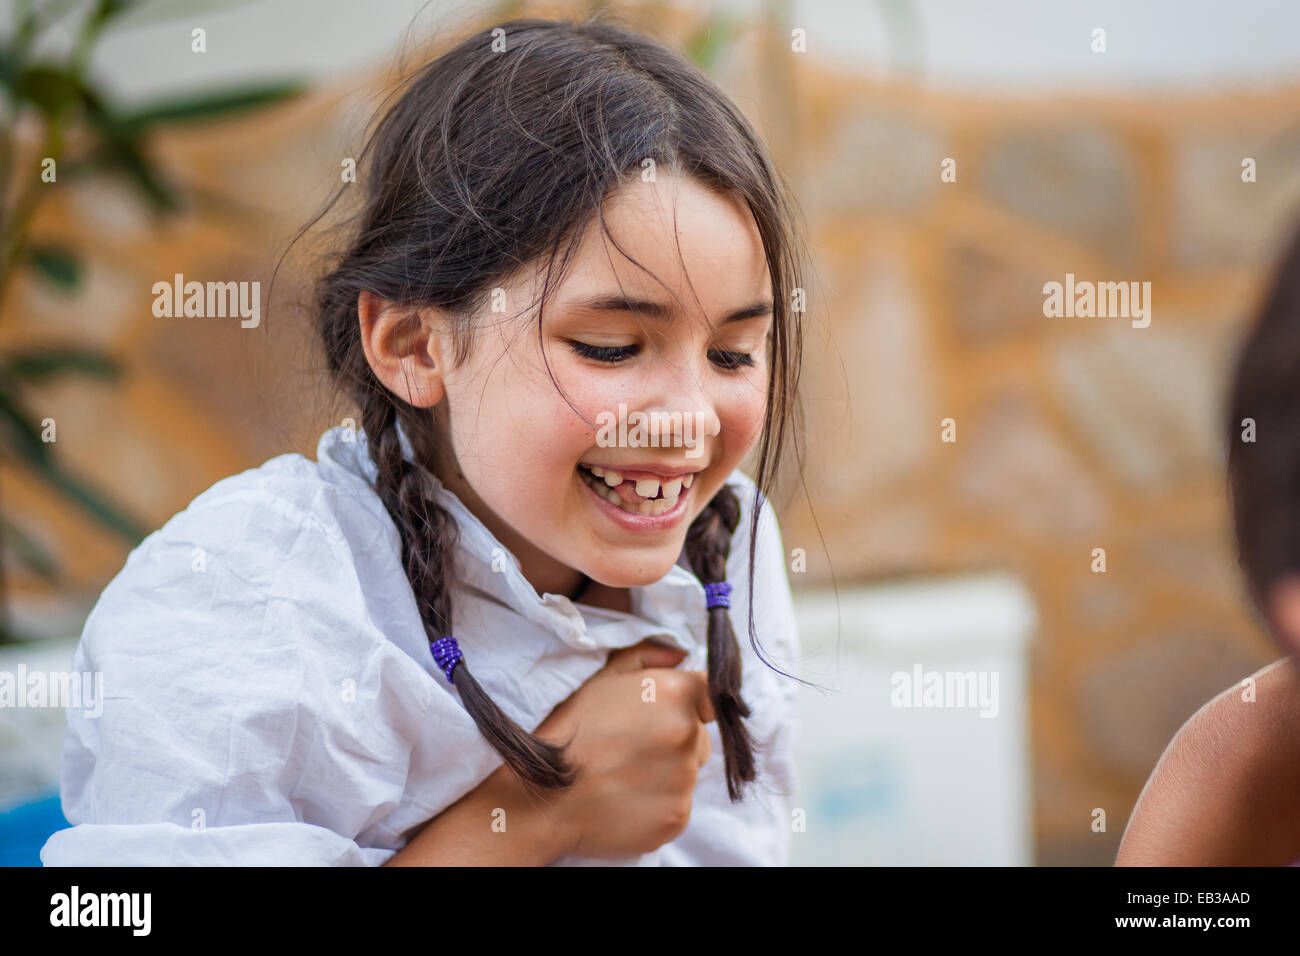 Little girl (6-7) with braids and white shirt laughing happily Stock Photo